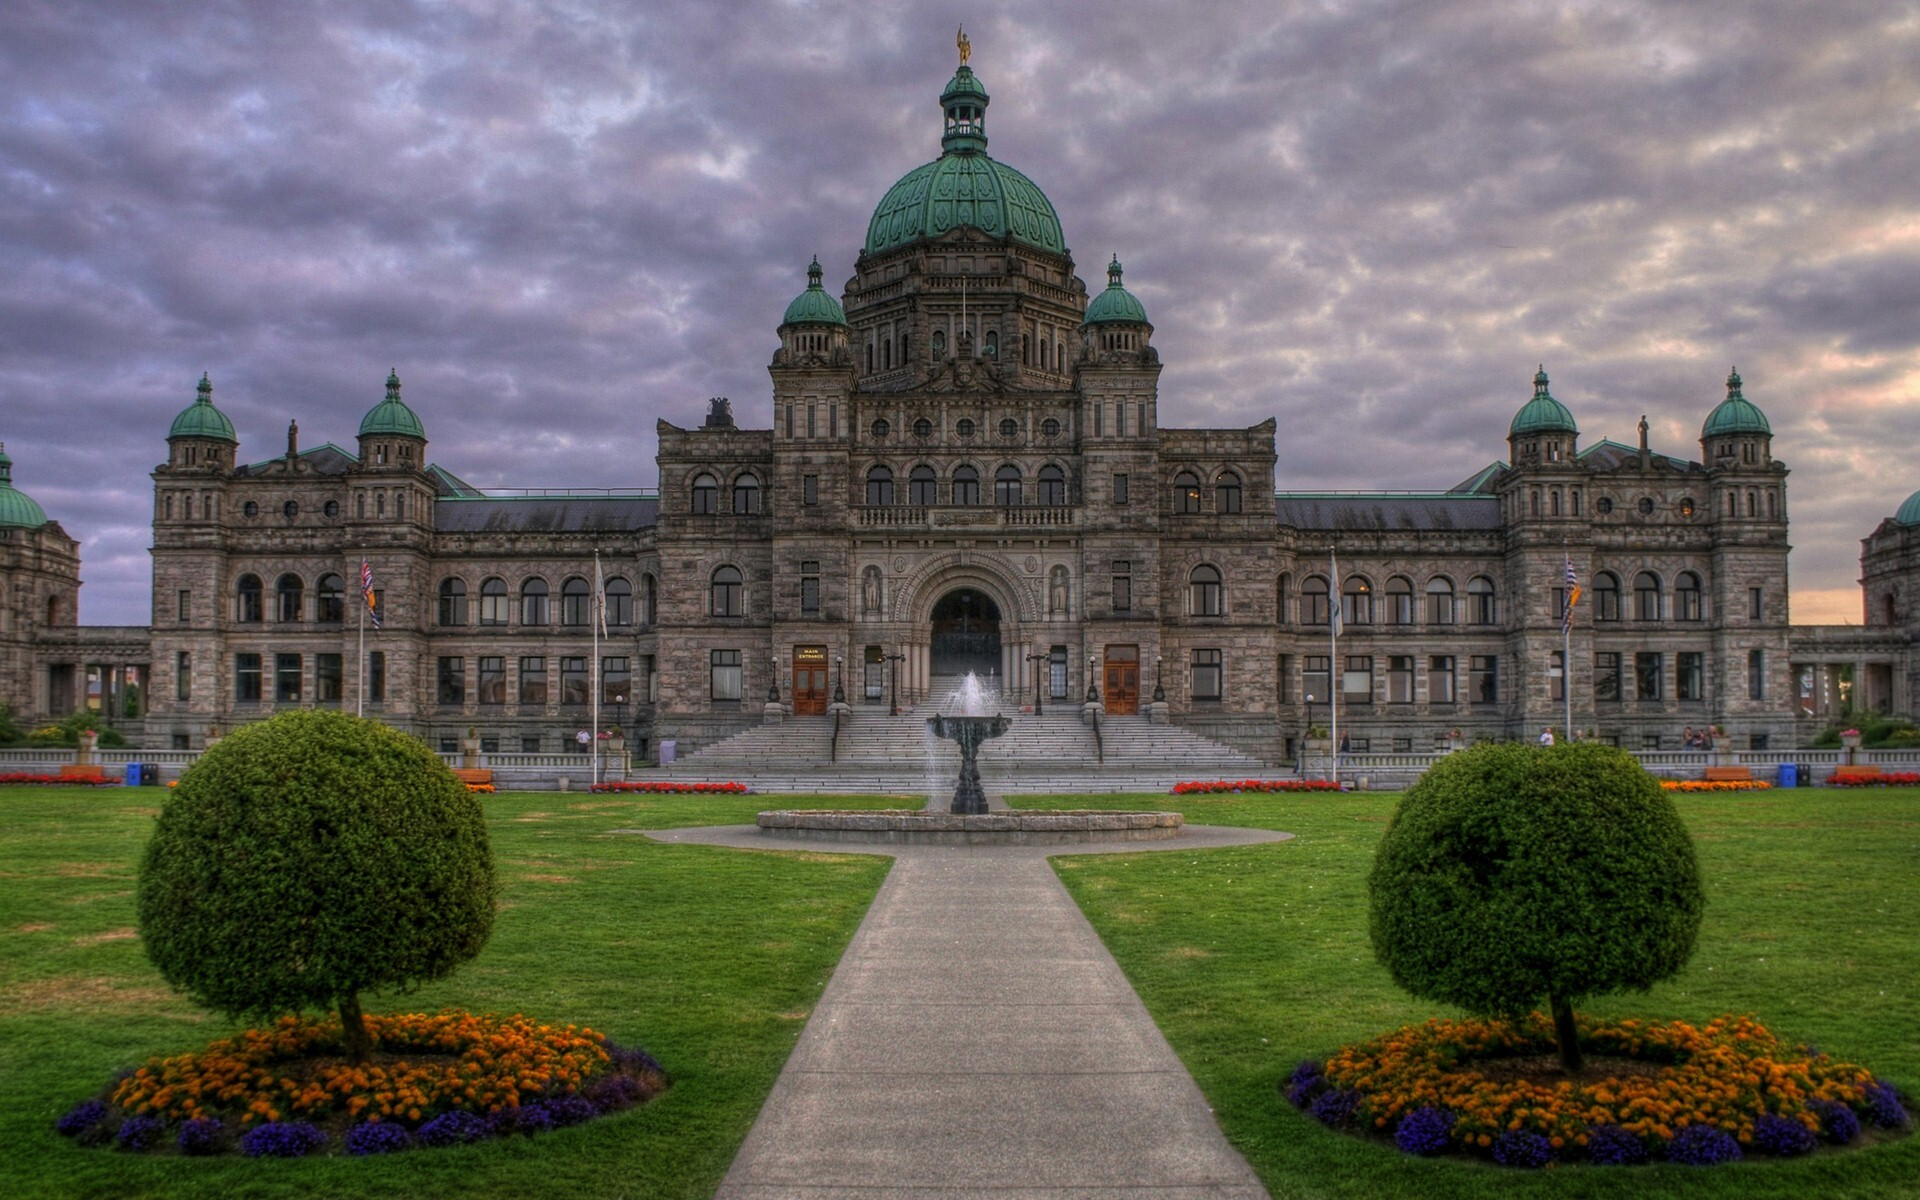 British Columbia Parliament Palace In Canada Image Hd